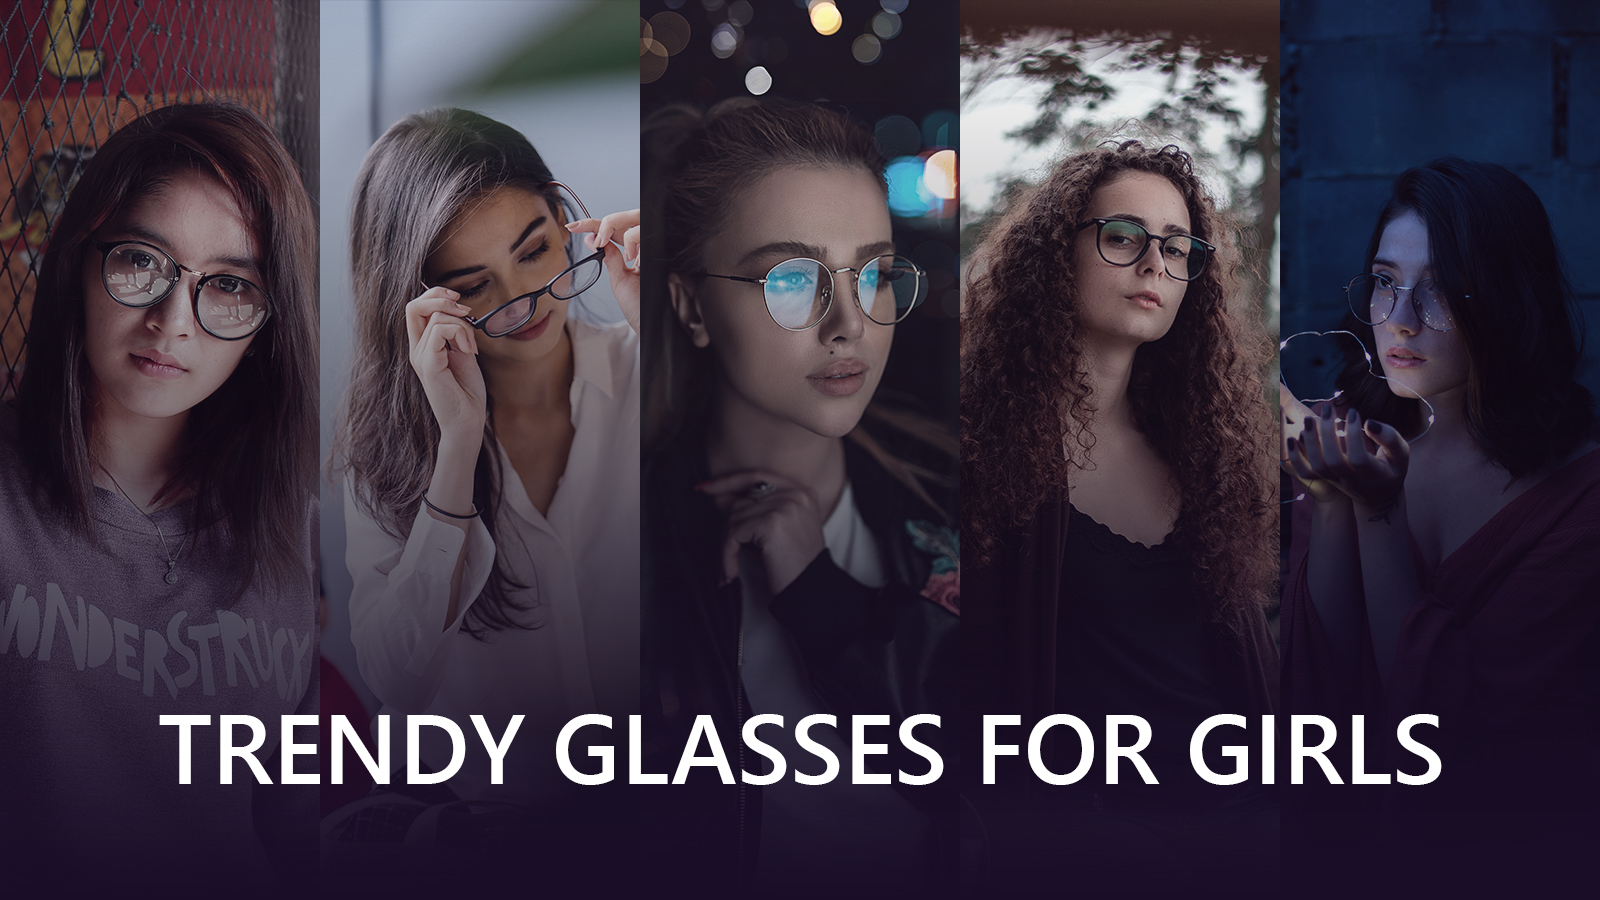 What's new and trendy in Glasses for girls 2020?